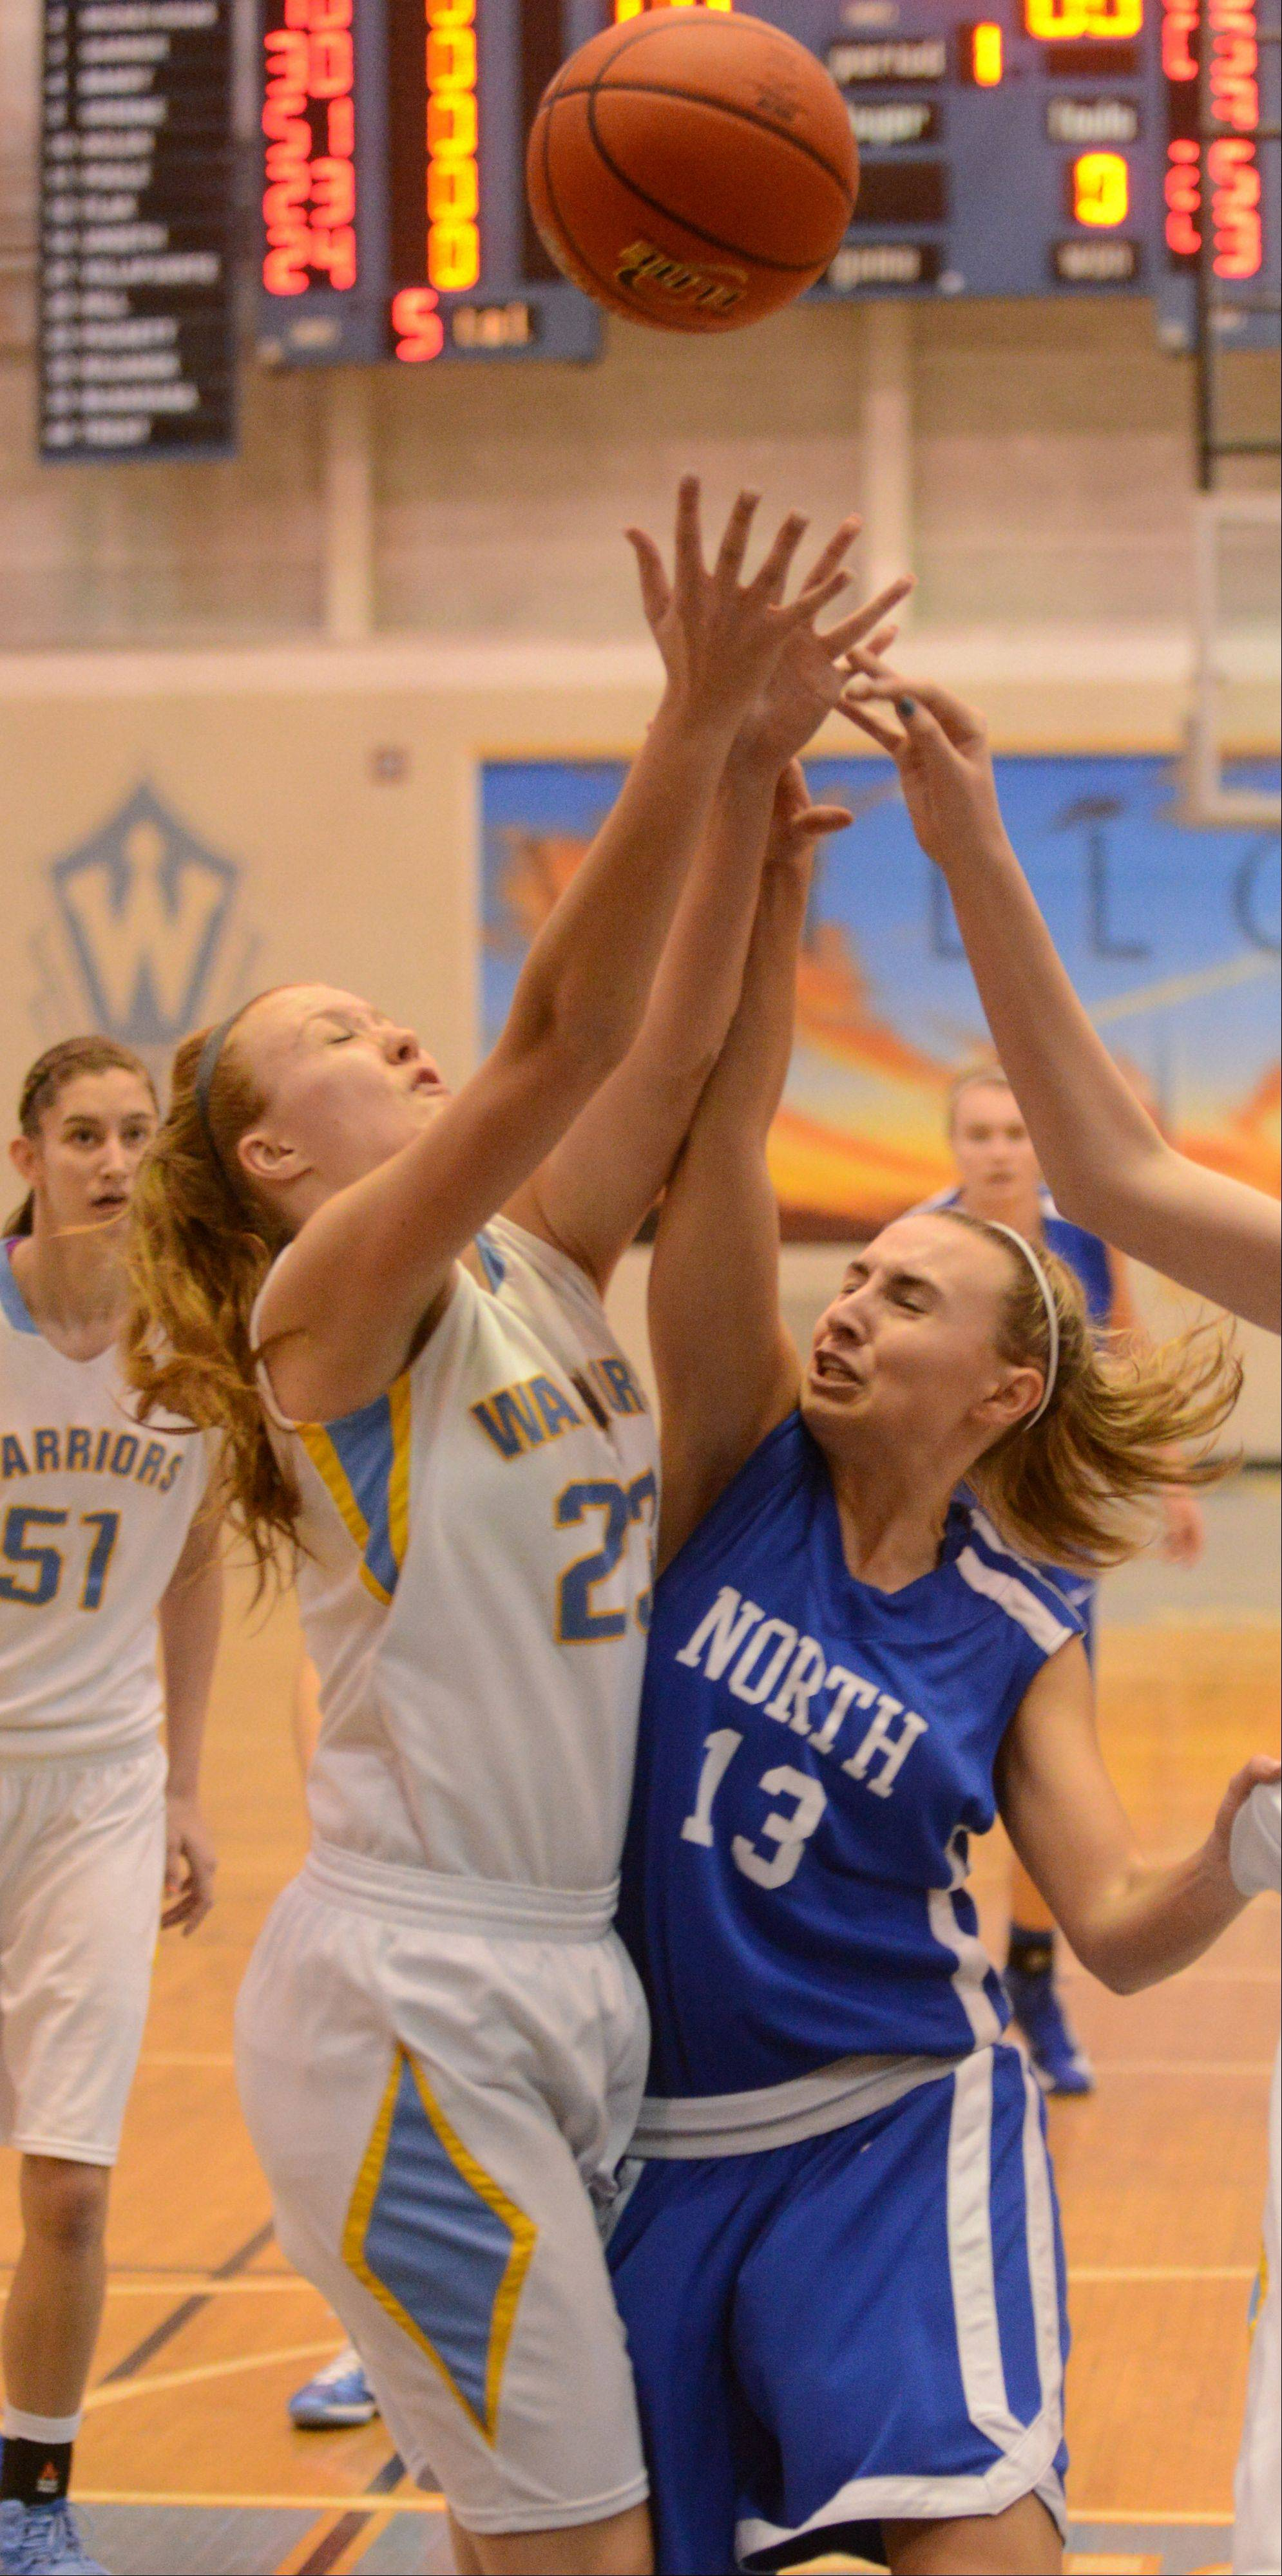 Ashley Collins of Main West,left, and Brooke Schanowski of Wheaton north go for a rebound during the Wheaton North vs. Maine West girls basketball game at McDonald's Shootout in Willowbrook Saturday.